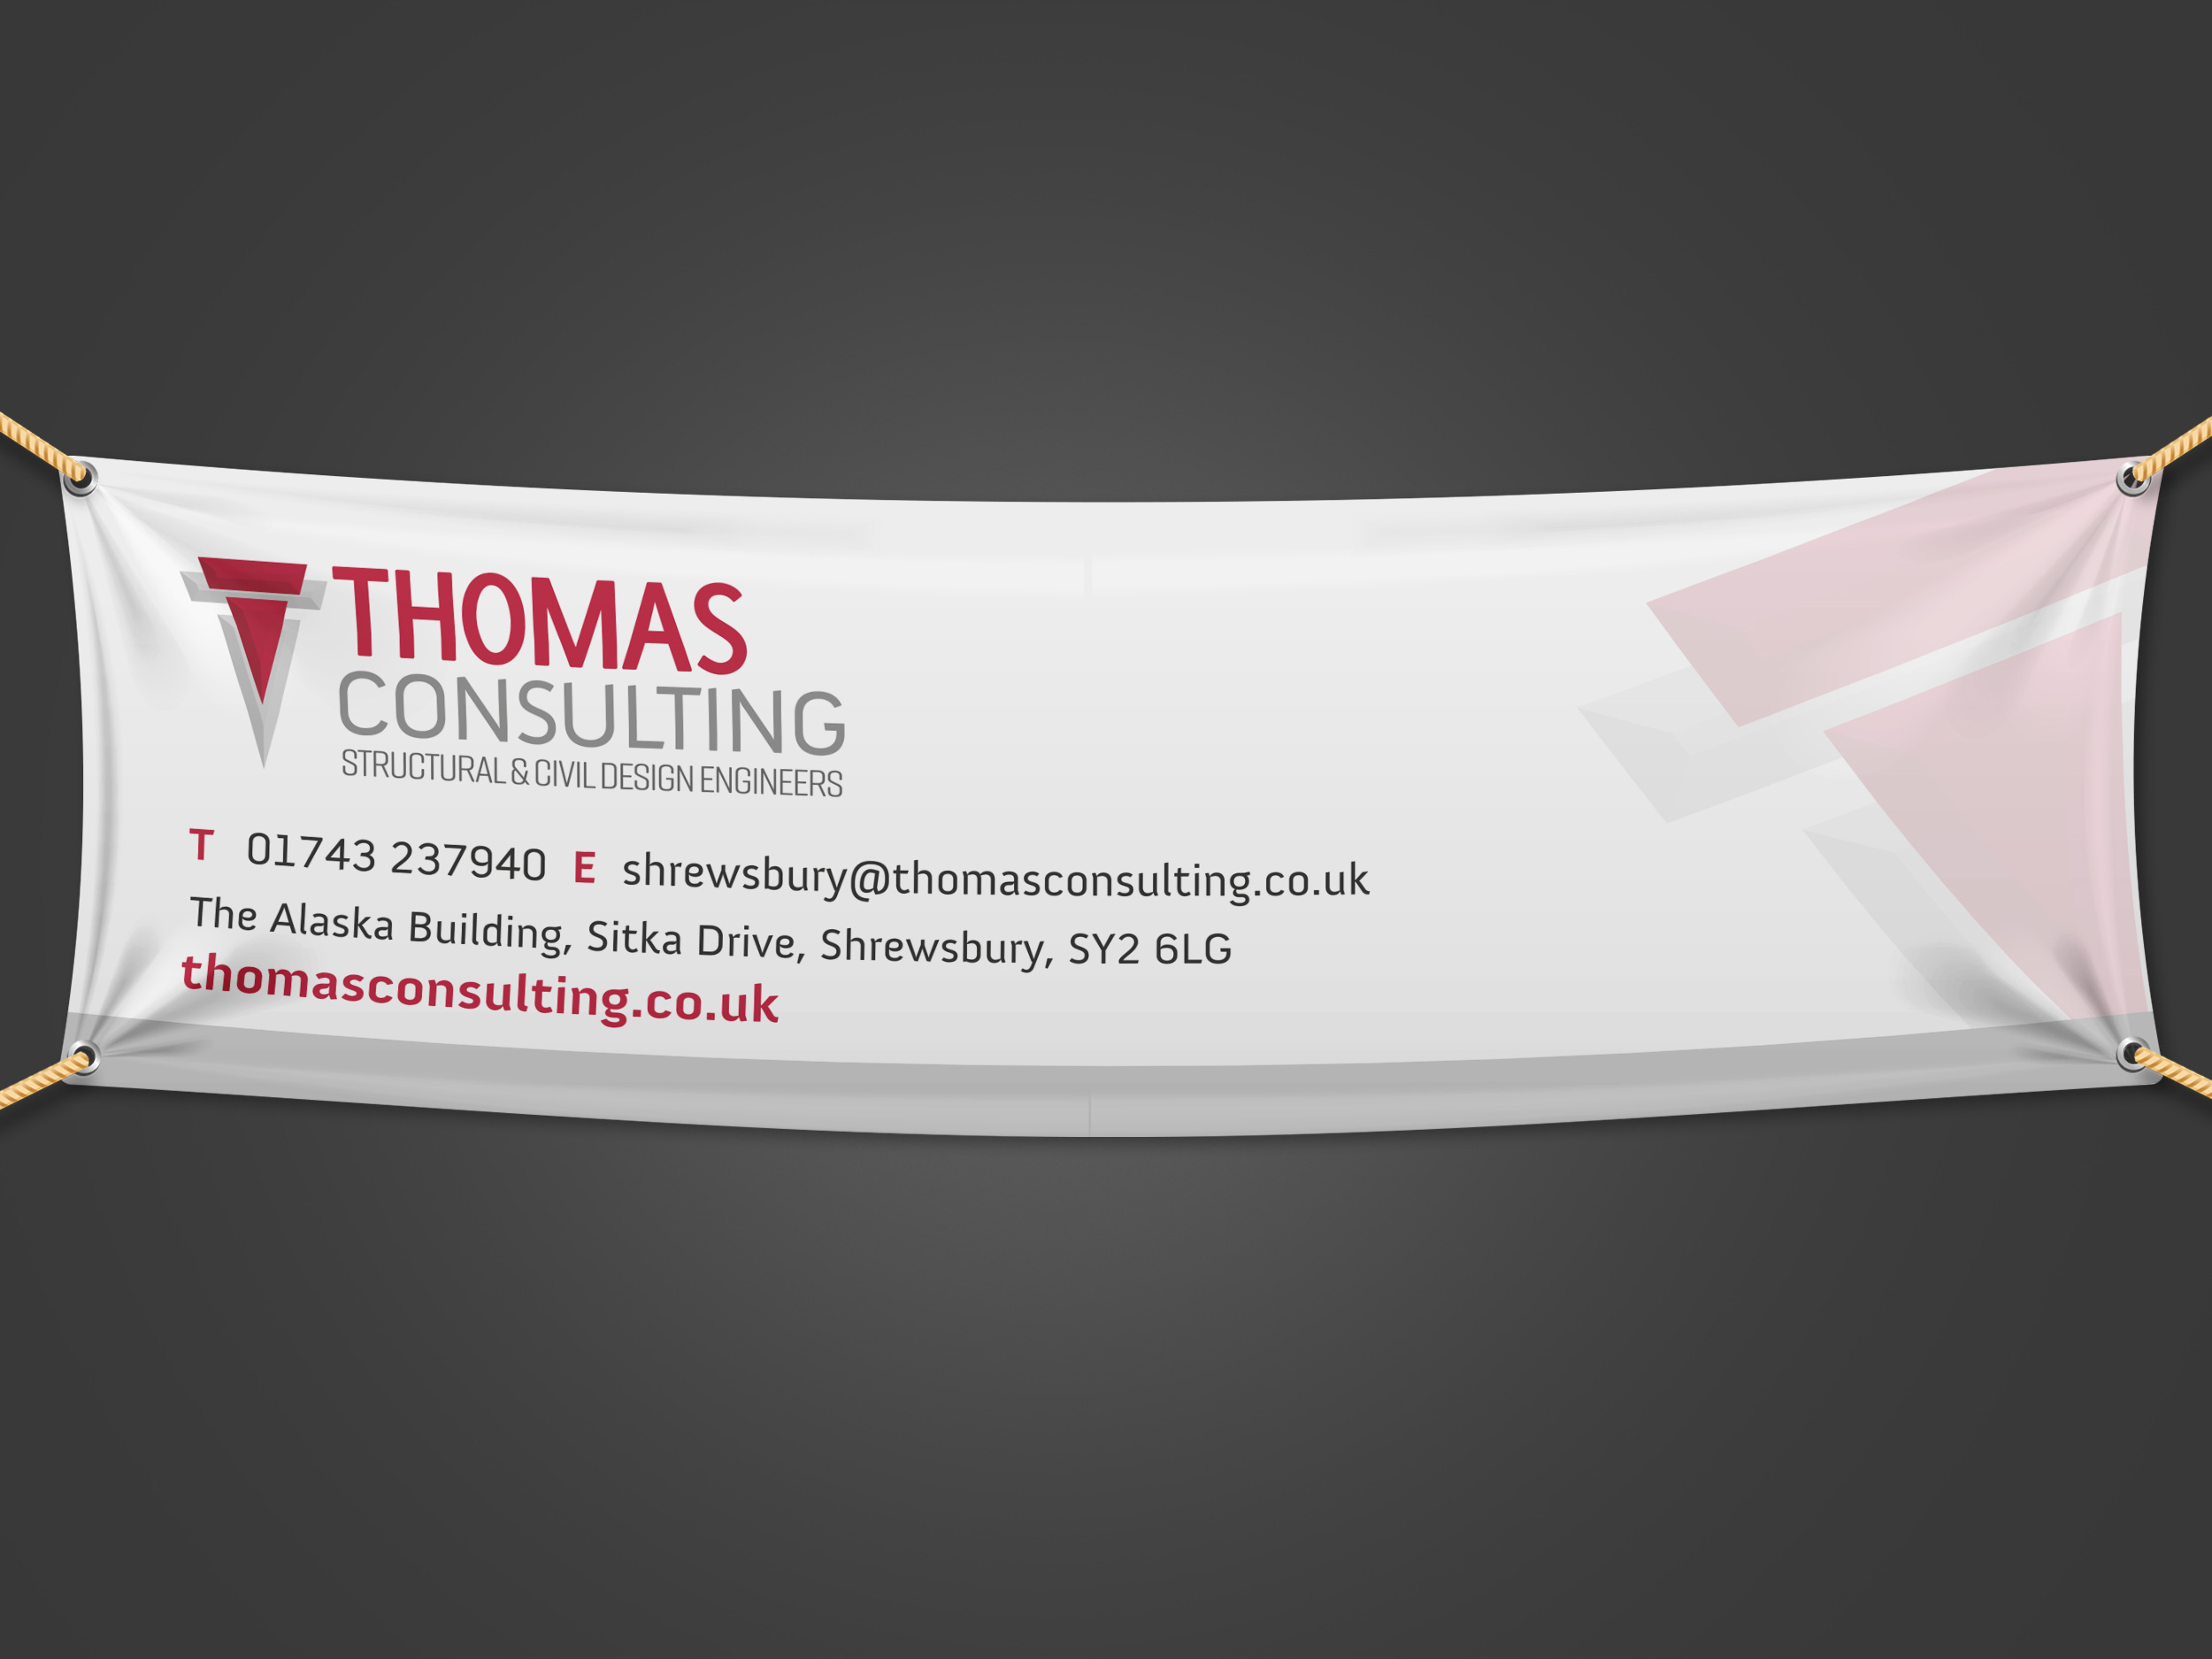 Thomas Consulting banner